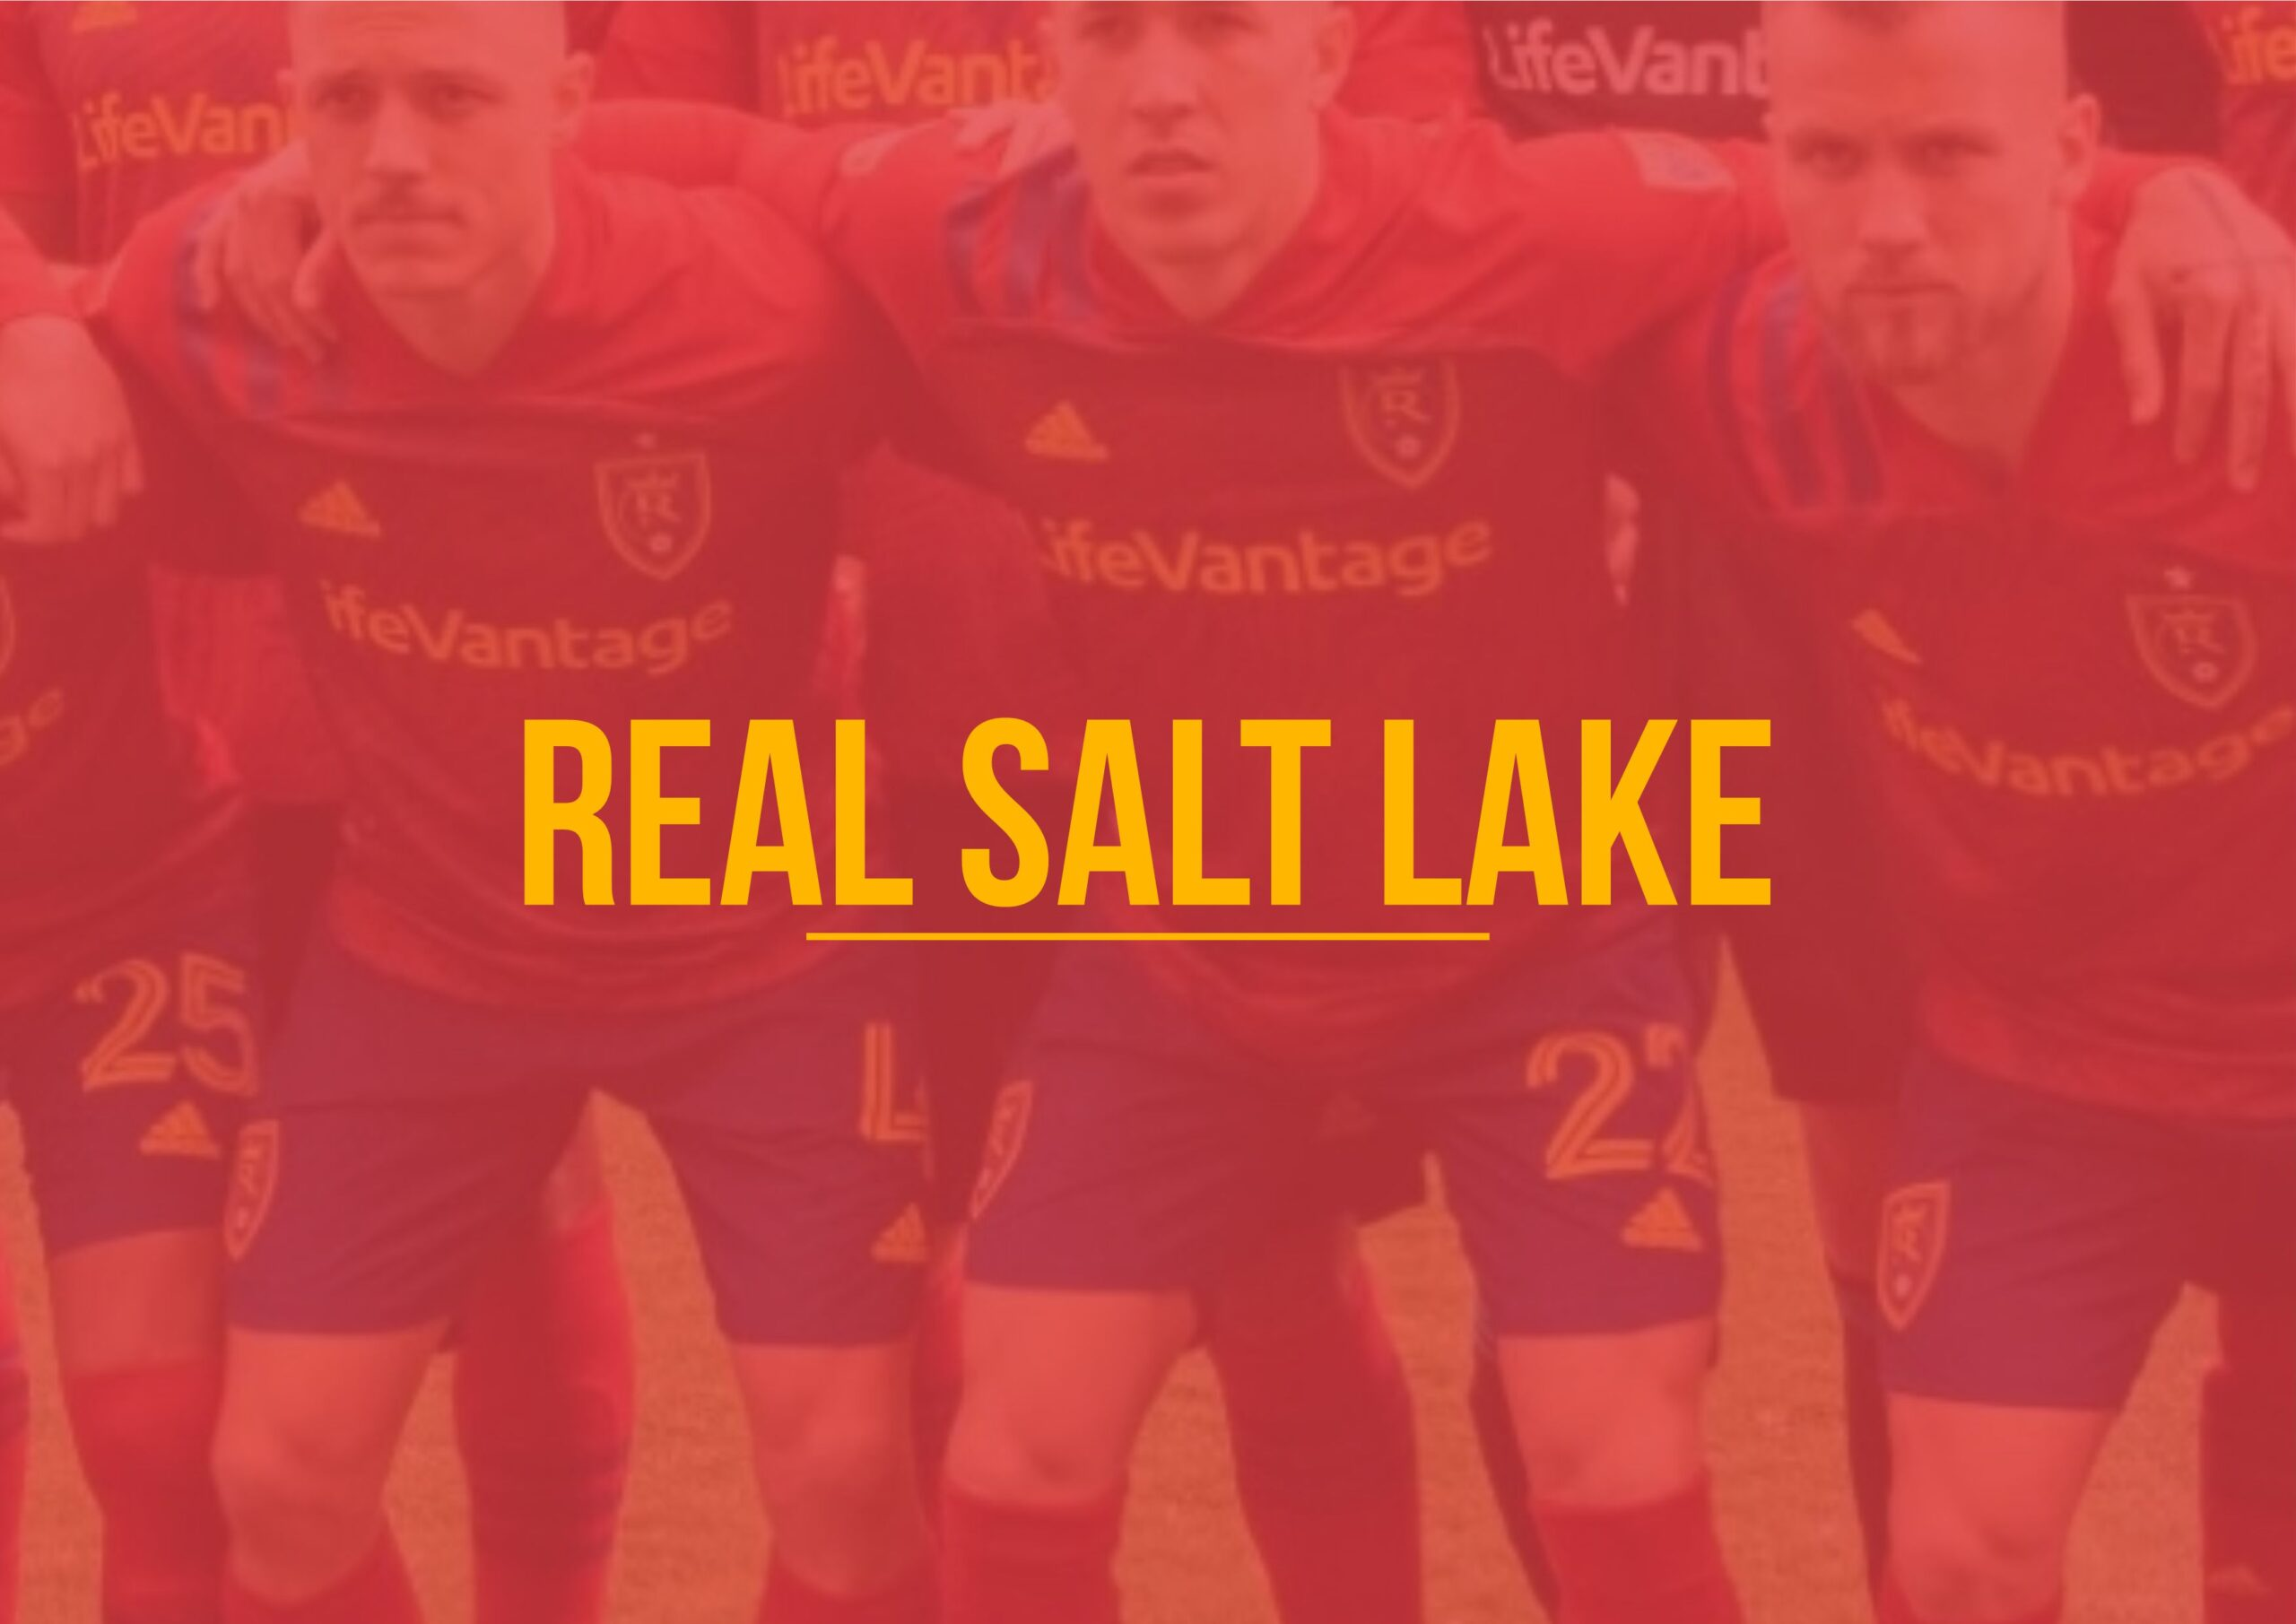 Real Salt Lake | MLS Magazine Italia